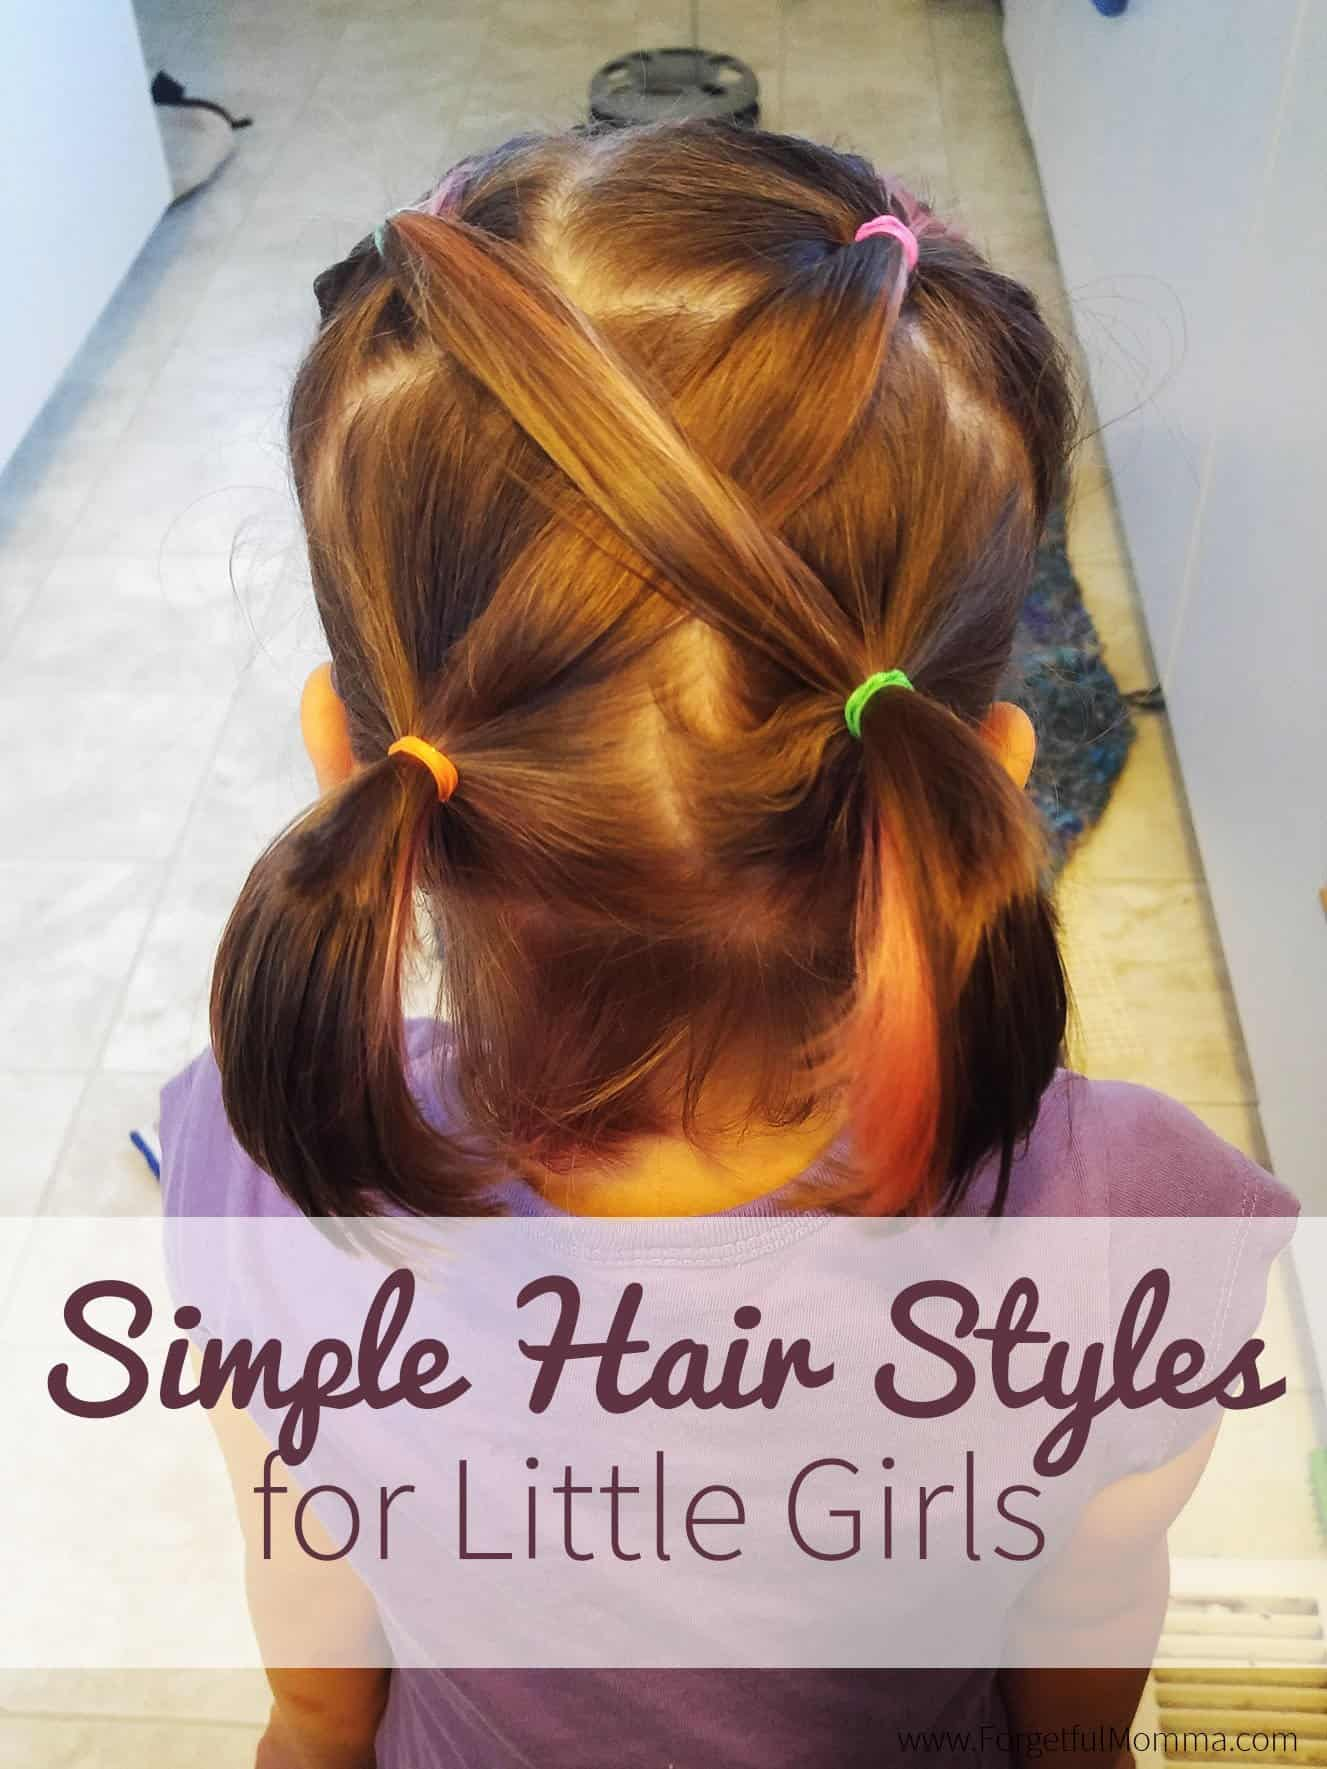 Little girls hair styles